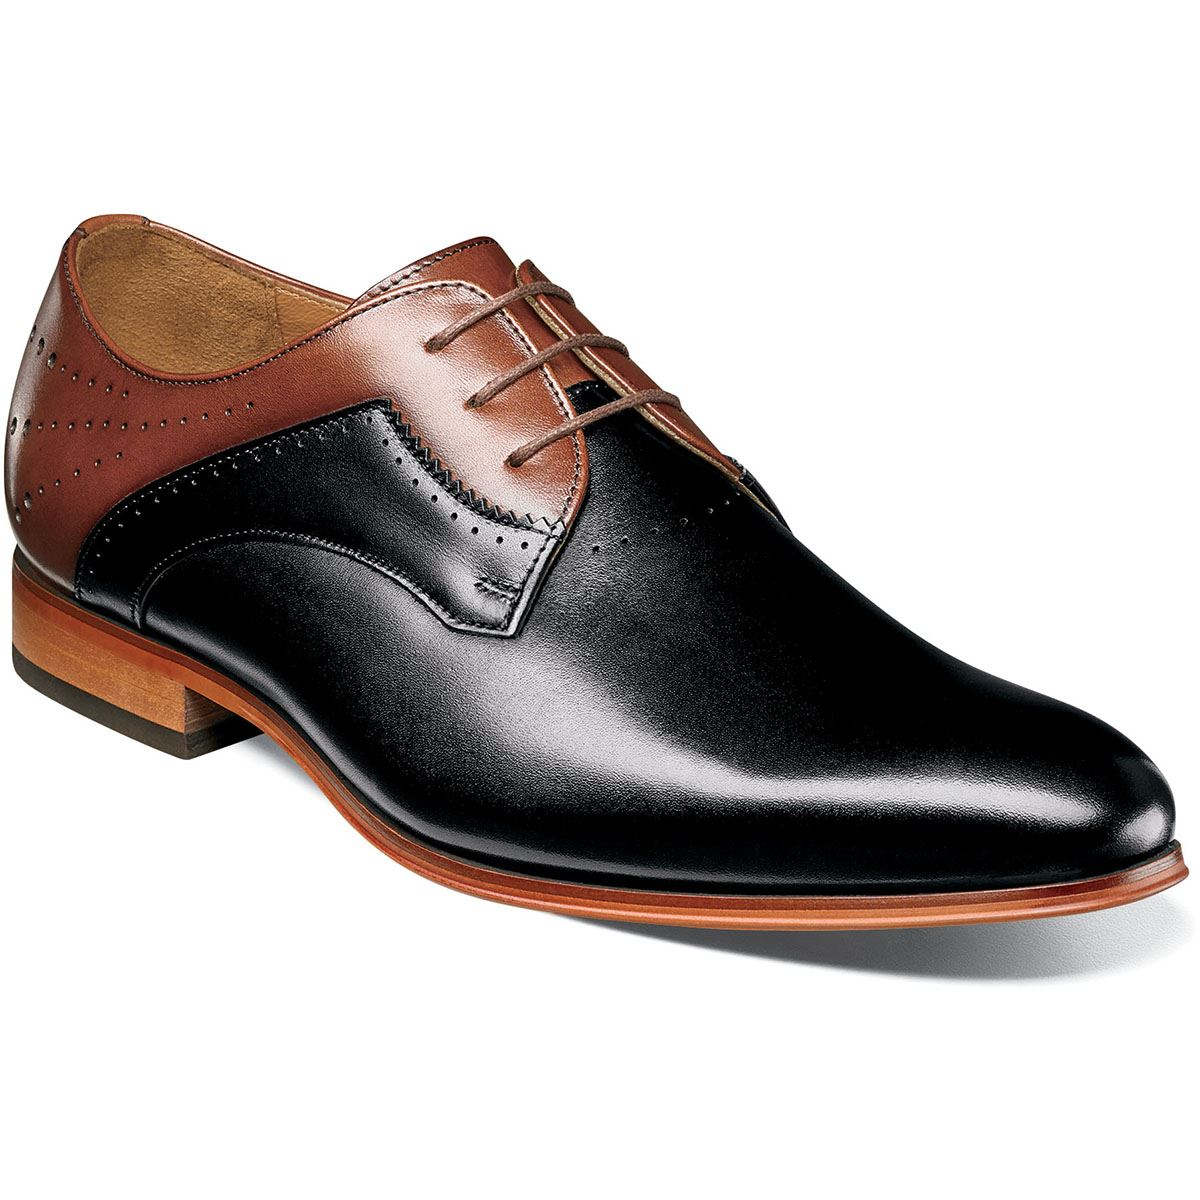 Stacy Adams Adams Stacy Uomo Savion Plain Toe Oxford (25177) c967da